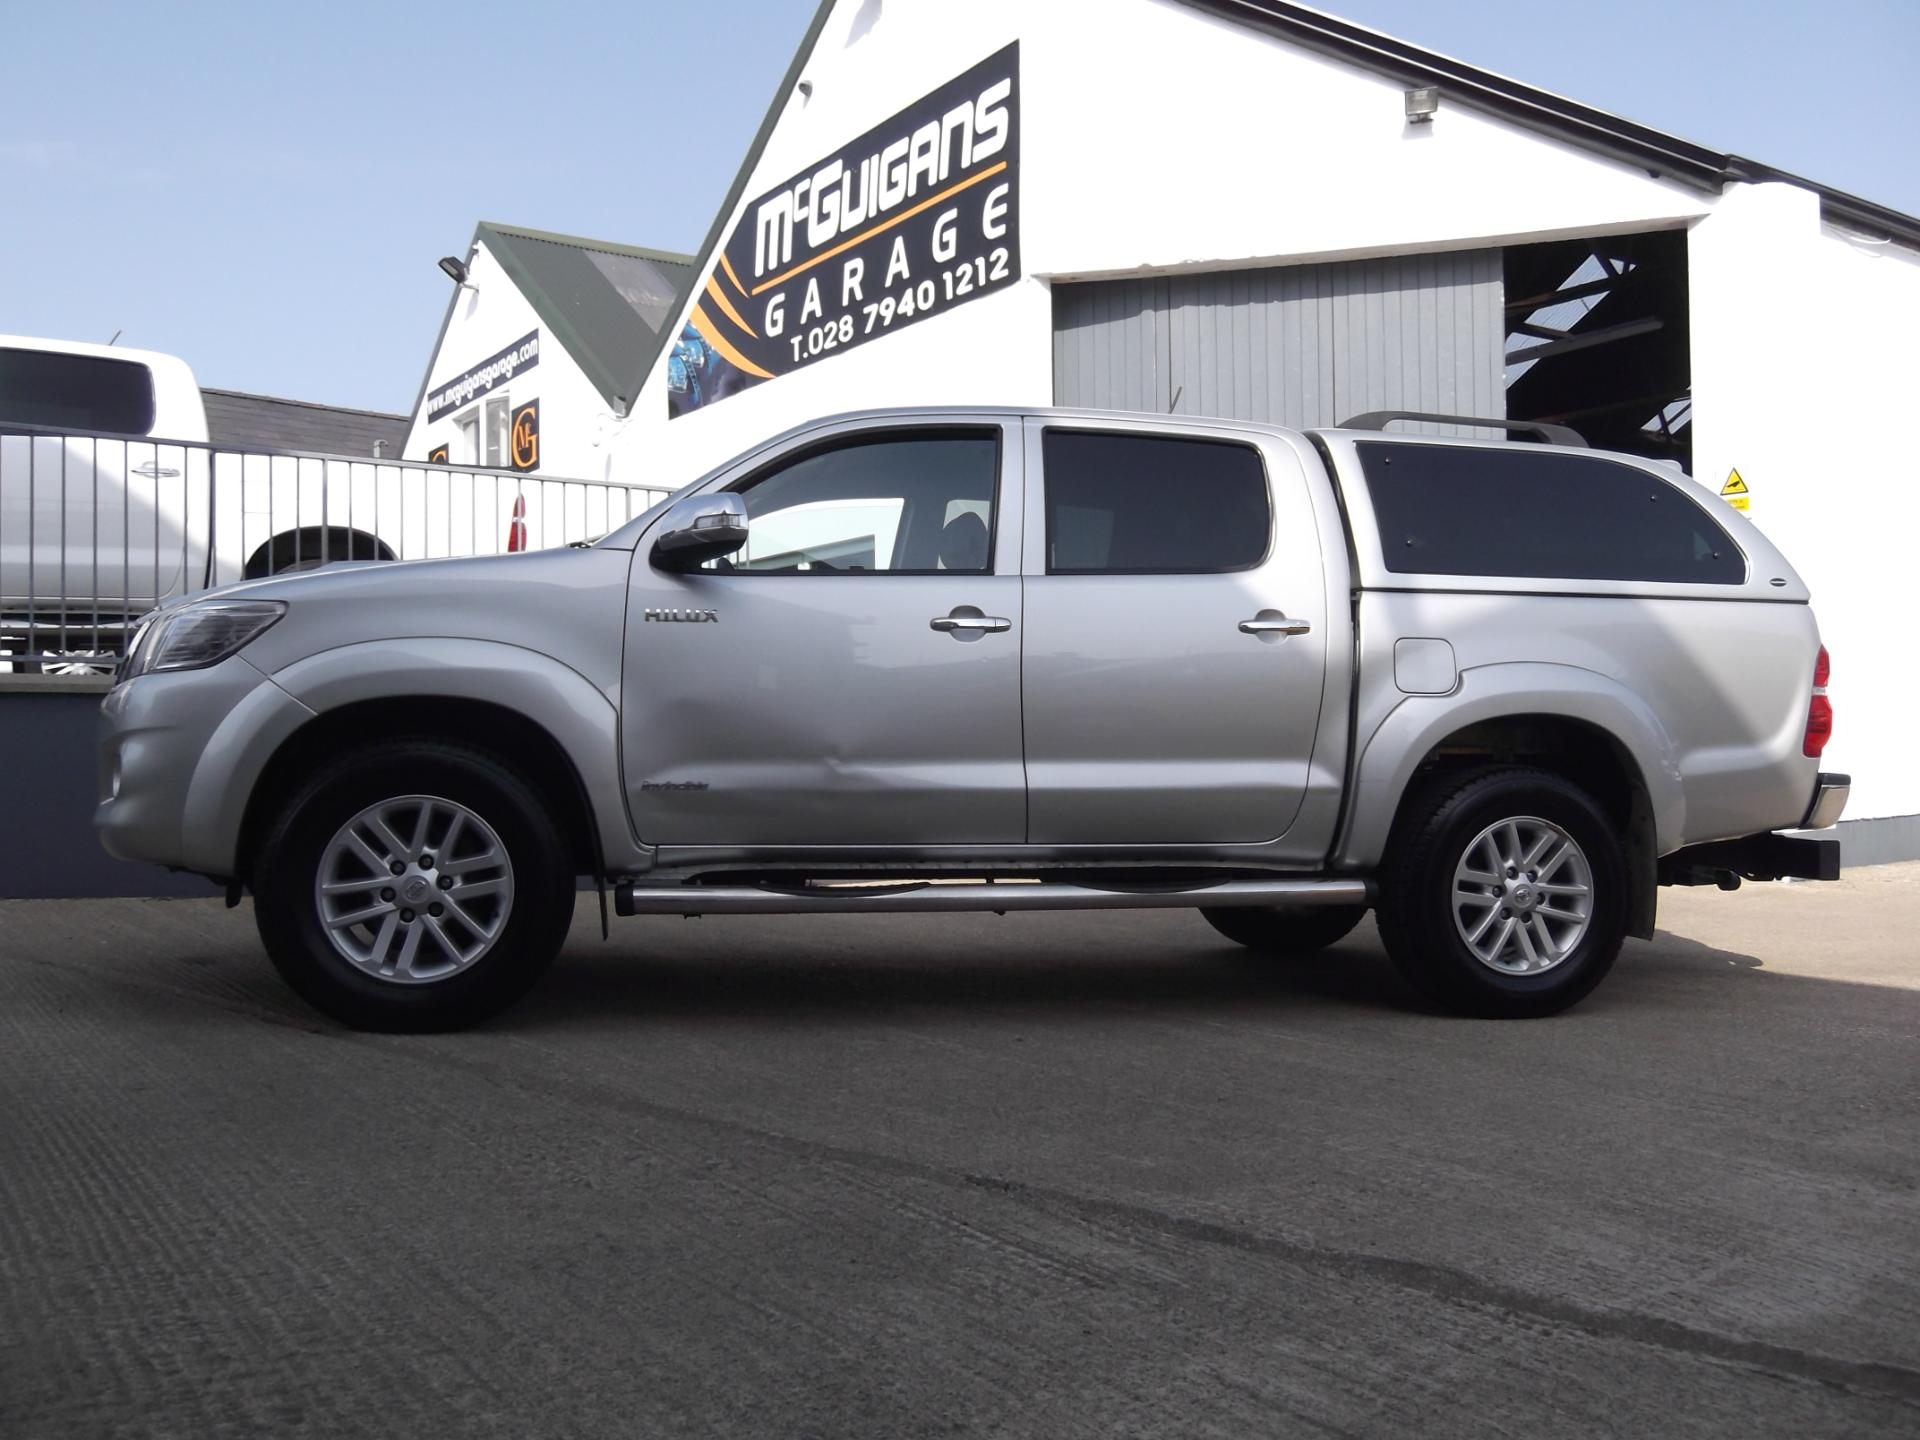 Used Toyota Hilux INVINCIBLE , 3.0 D-4D 171 , 4x4 ...